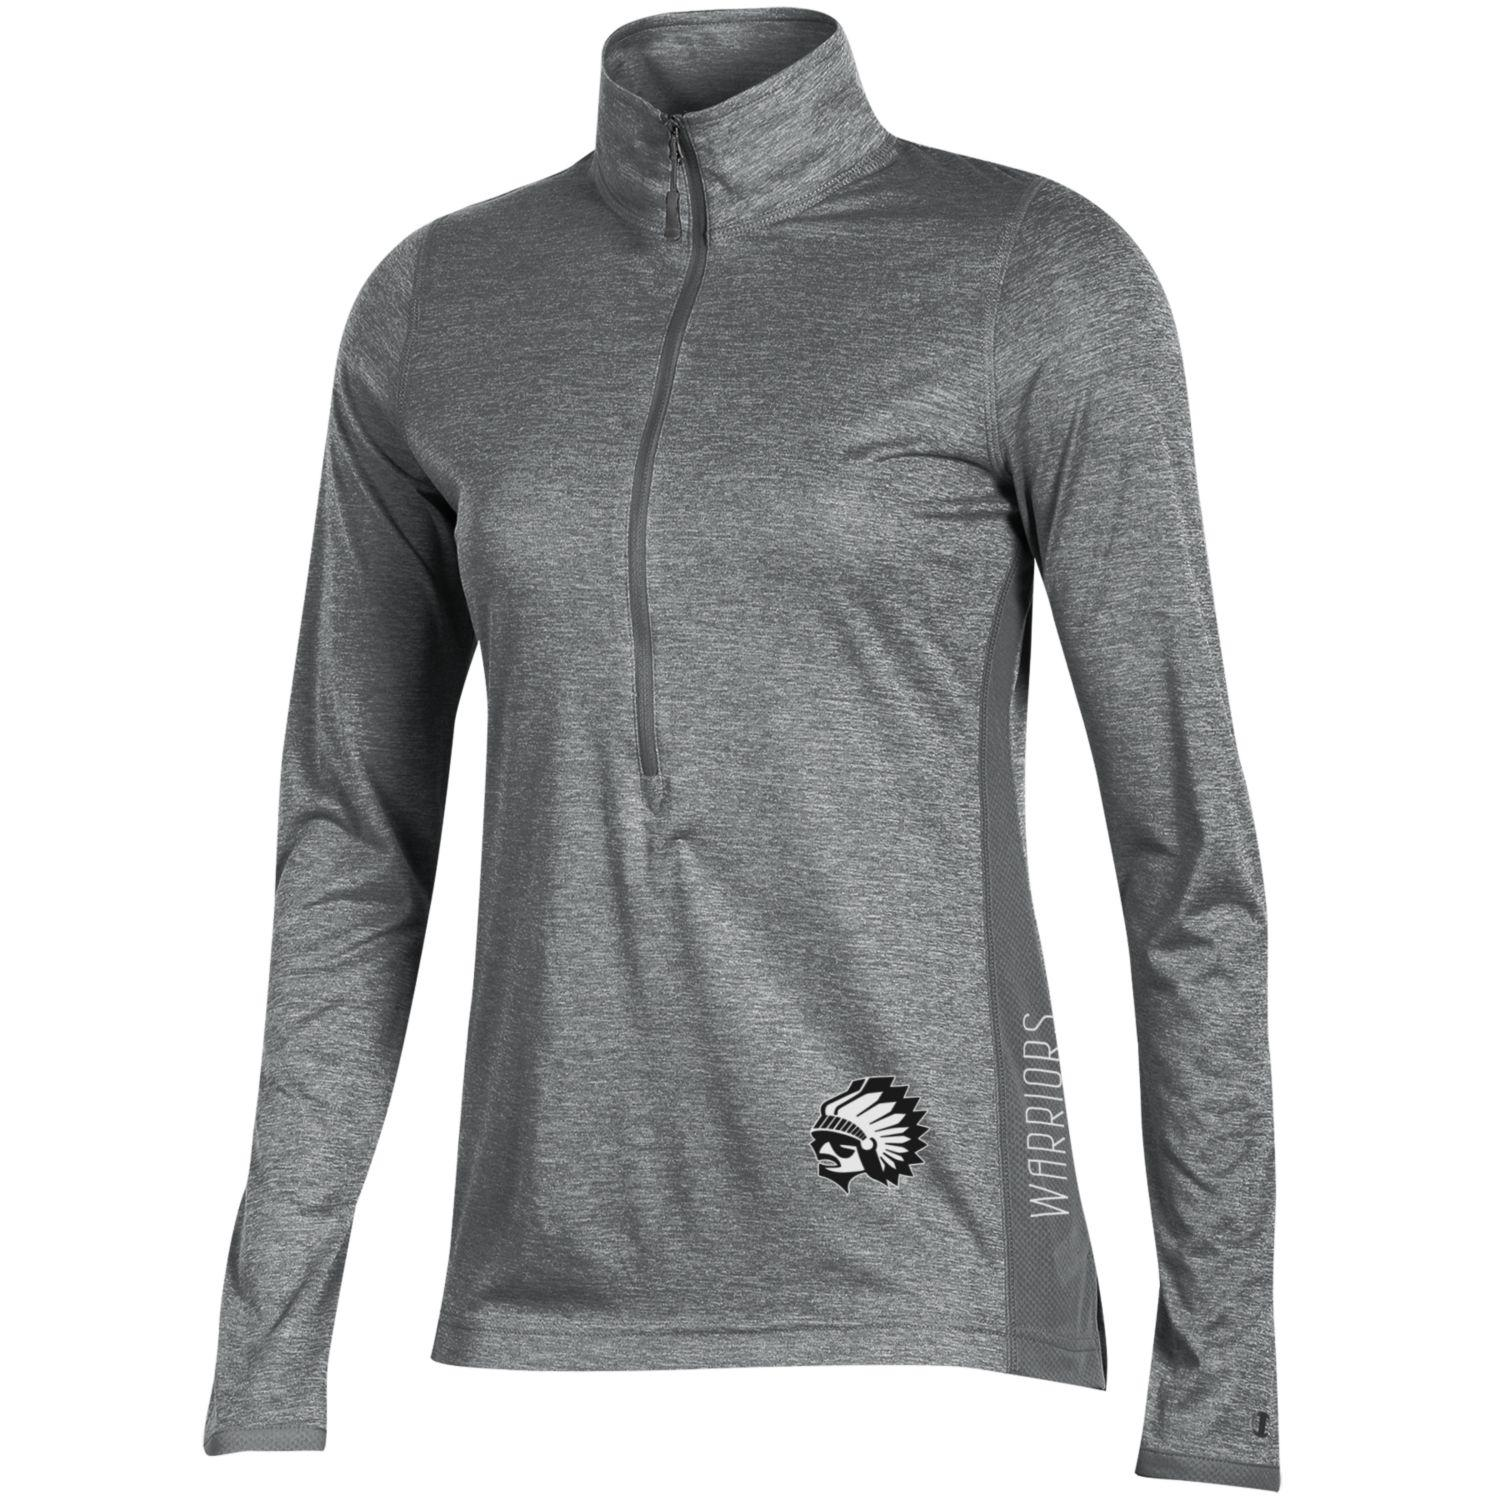 Ladies Champion Marathon 1/4 Zip